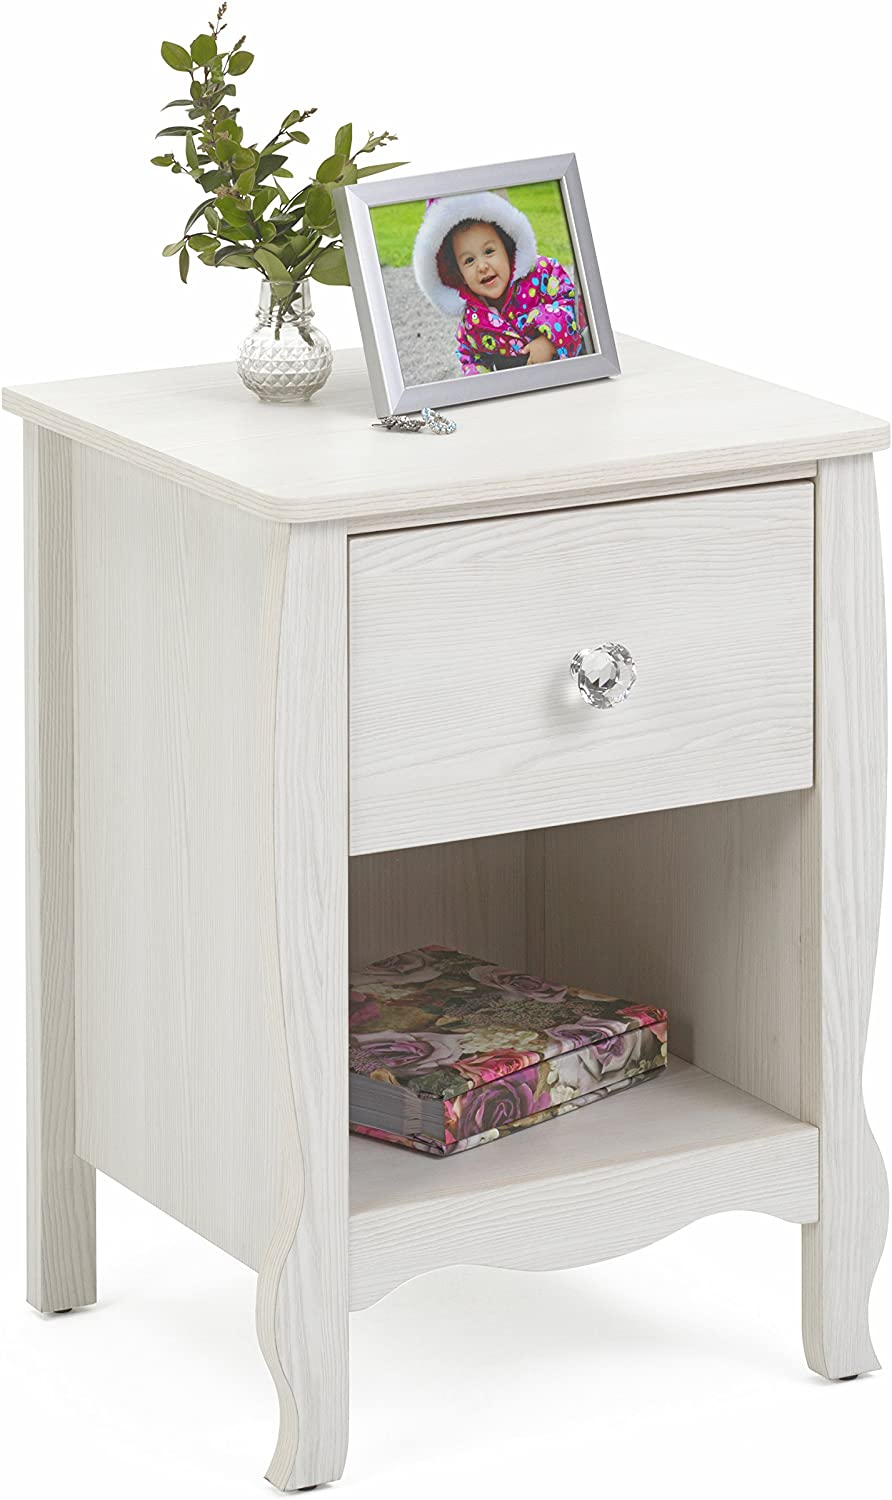 4D Concepts Lindsay NIGHTSTAND, Stone White Oak